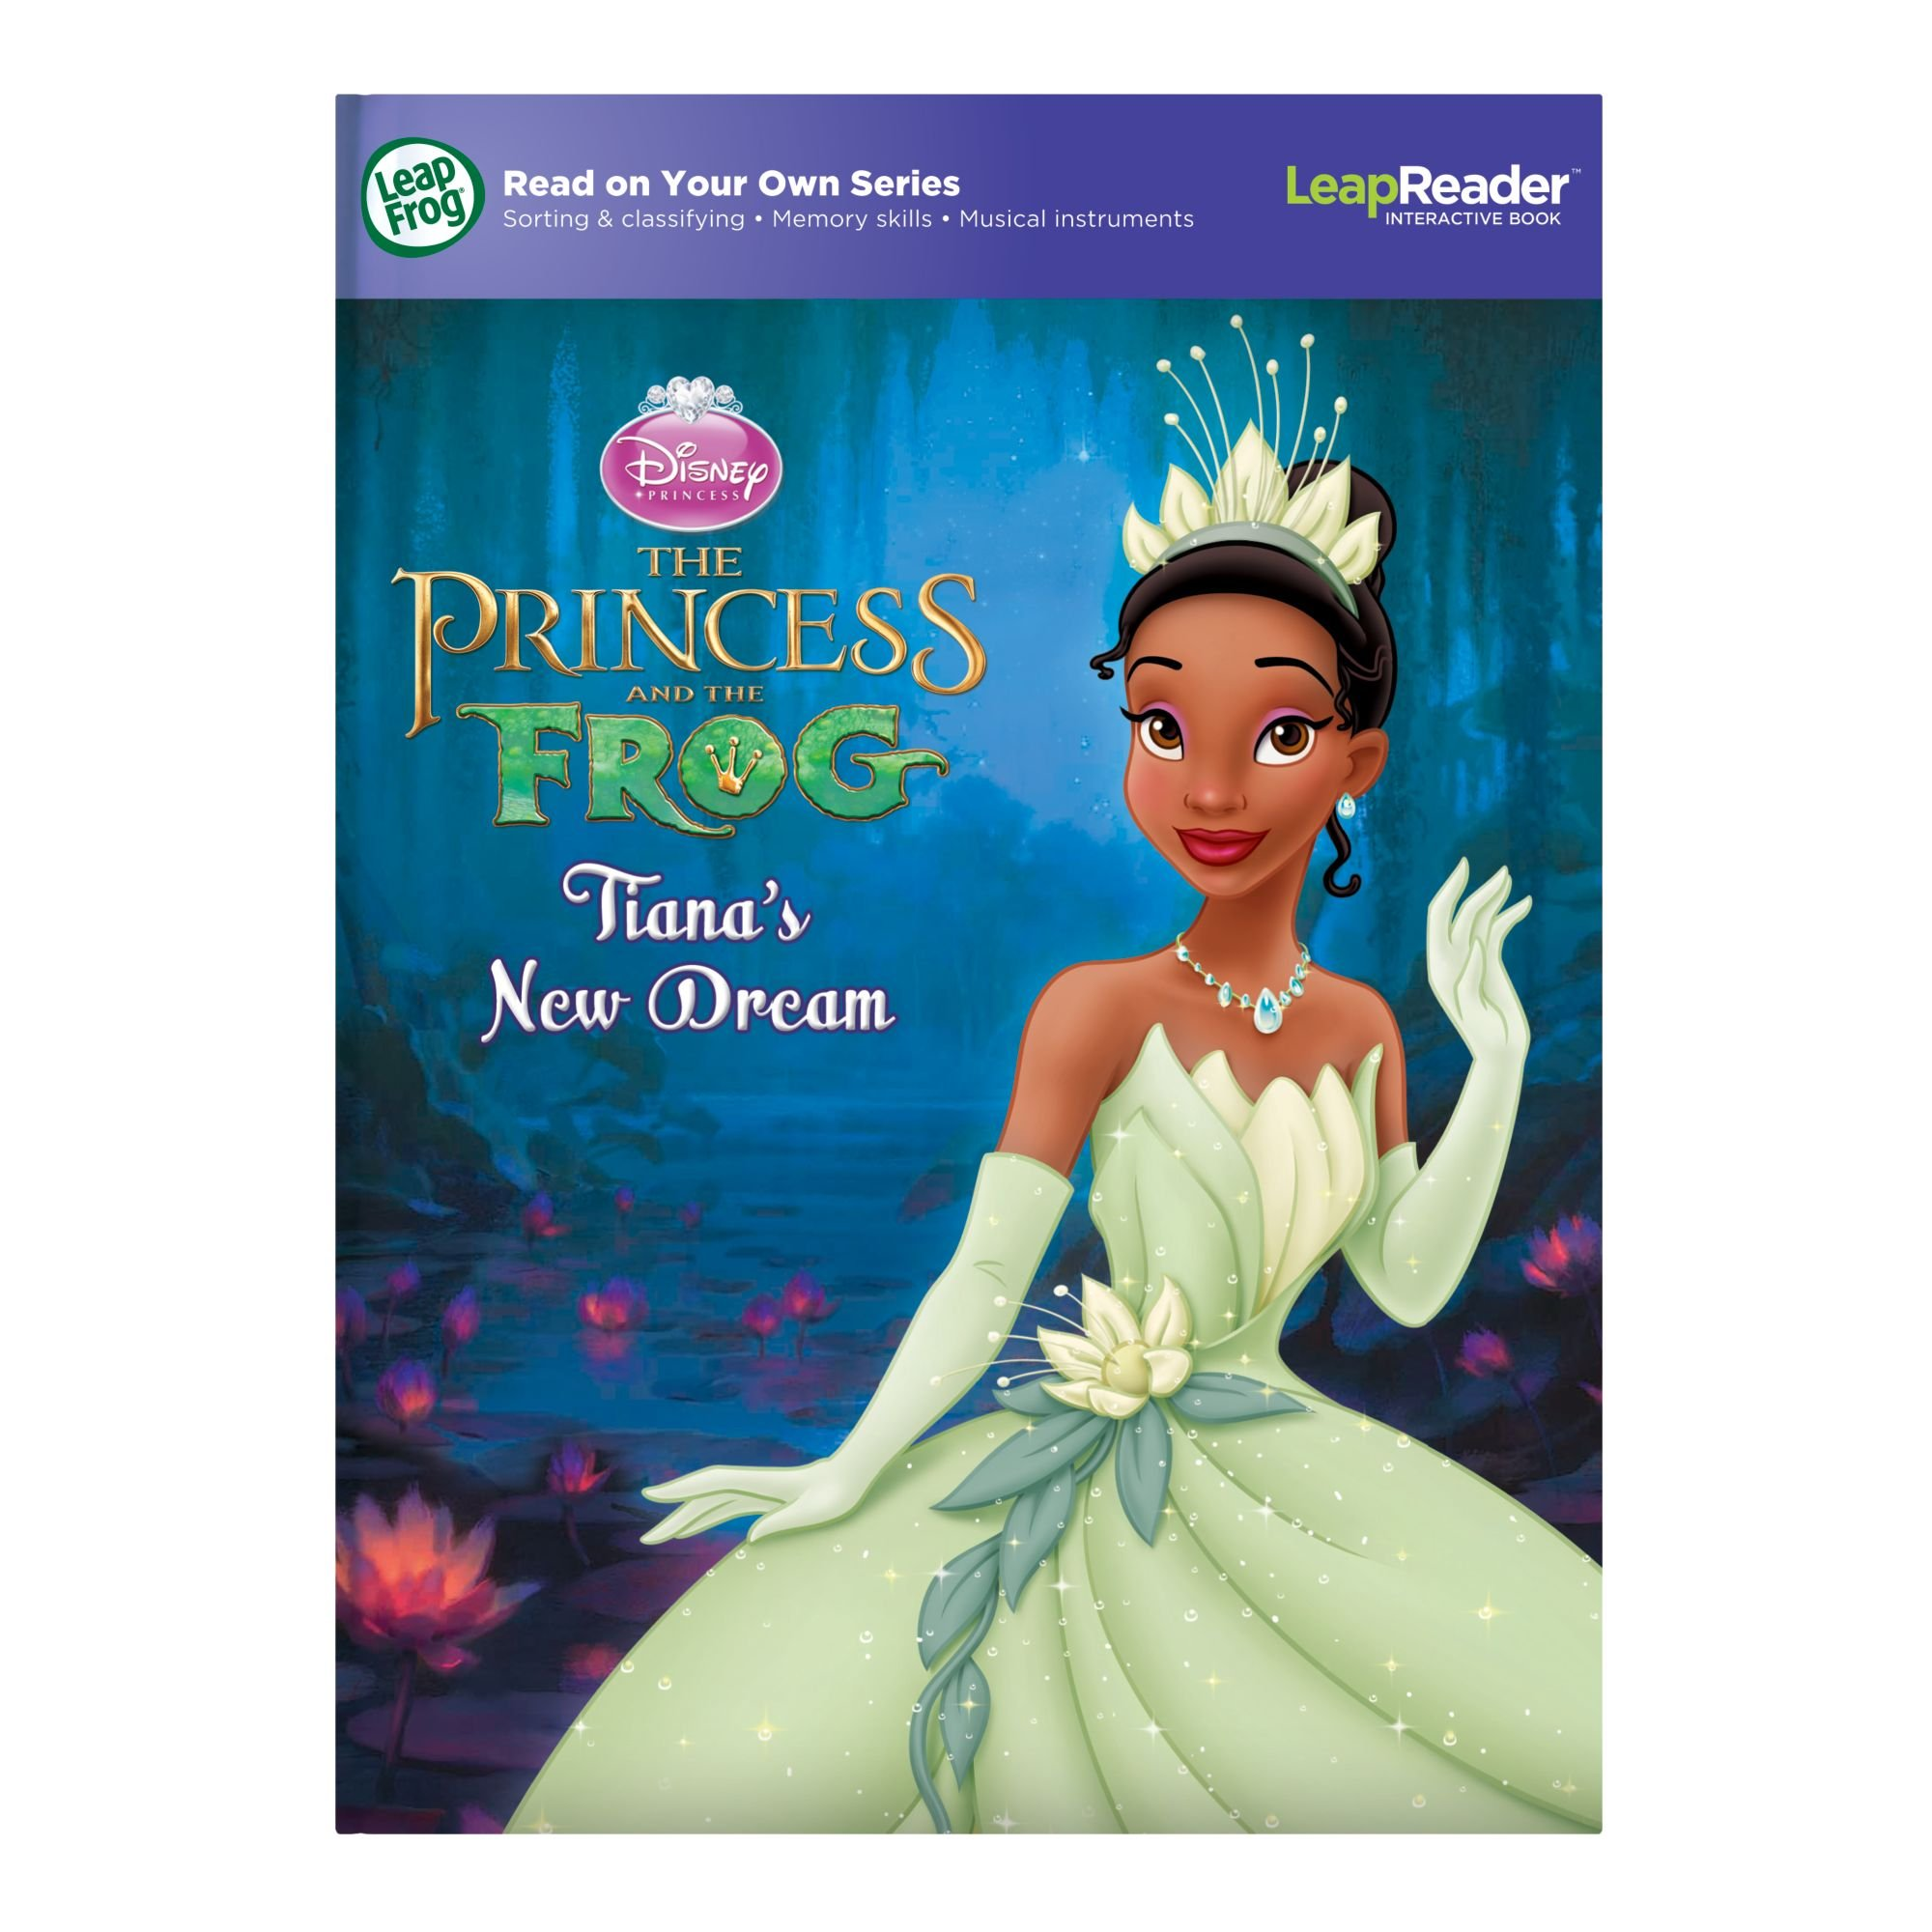 LeapFrog LeapReader Book: Disney Princess and the Frog (works with Tag) by LeapFrog (Image #8)